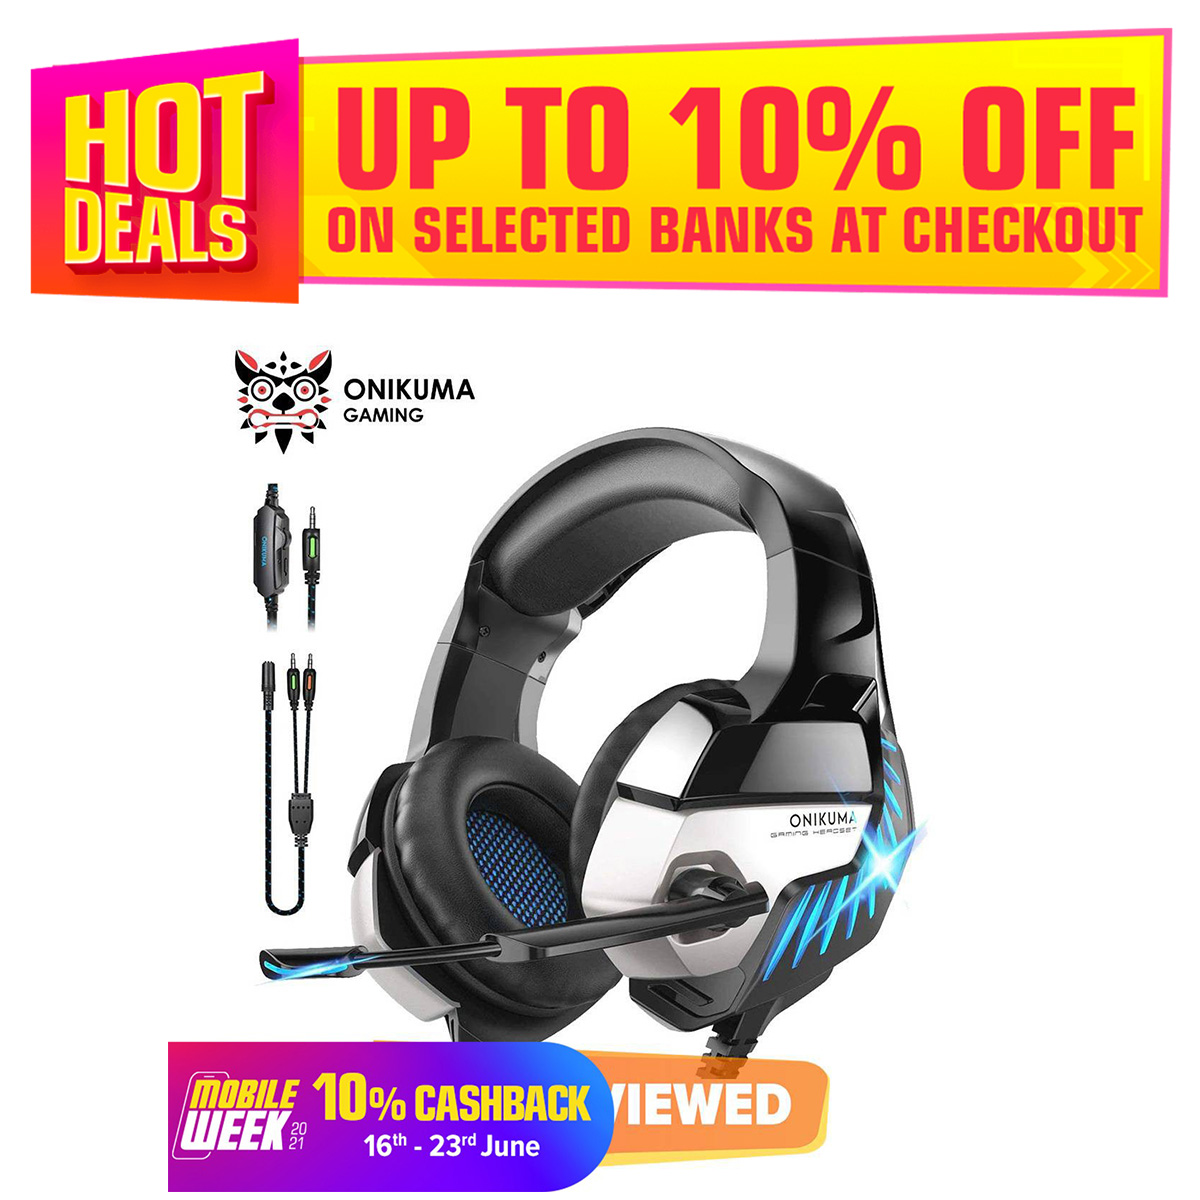 ONIKUMA K5 Pro Gaming Headphone Hi-Fi Subwoofer Headset 7.1 Virtual Stereo Headset With Mic for PS4 PC Xbox One - Black & Blue